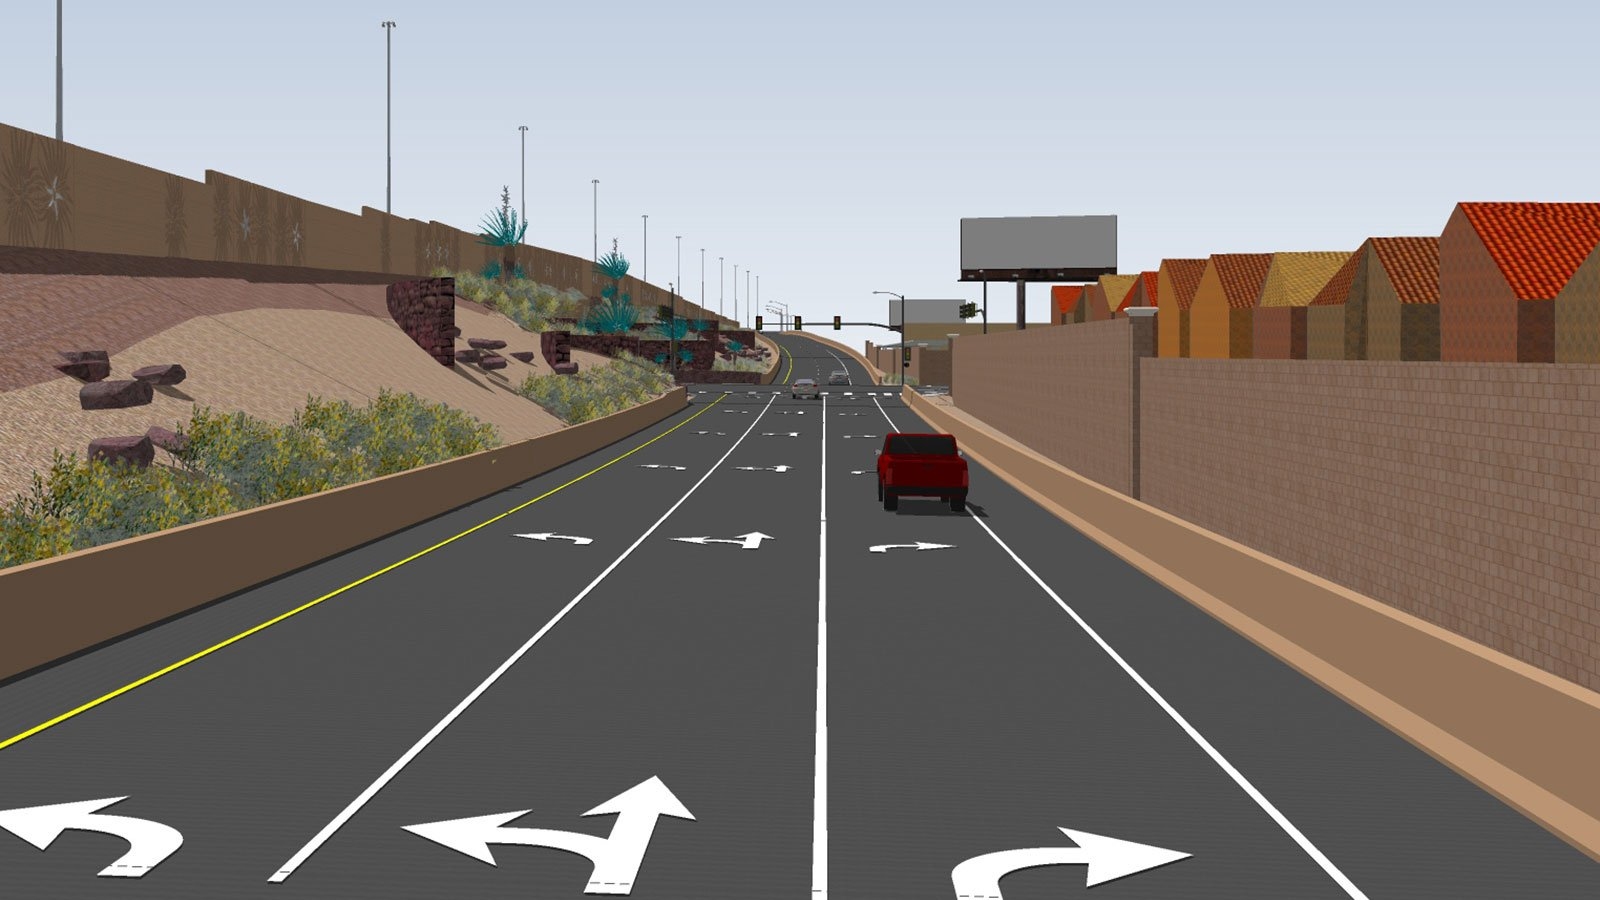 (Source: NDOT)